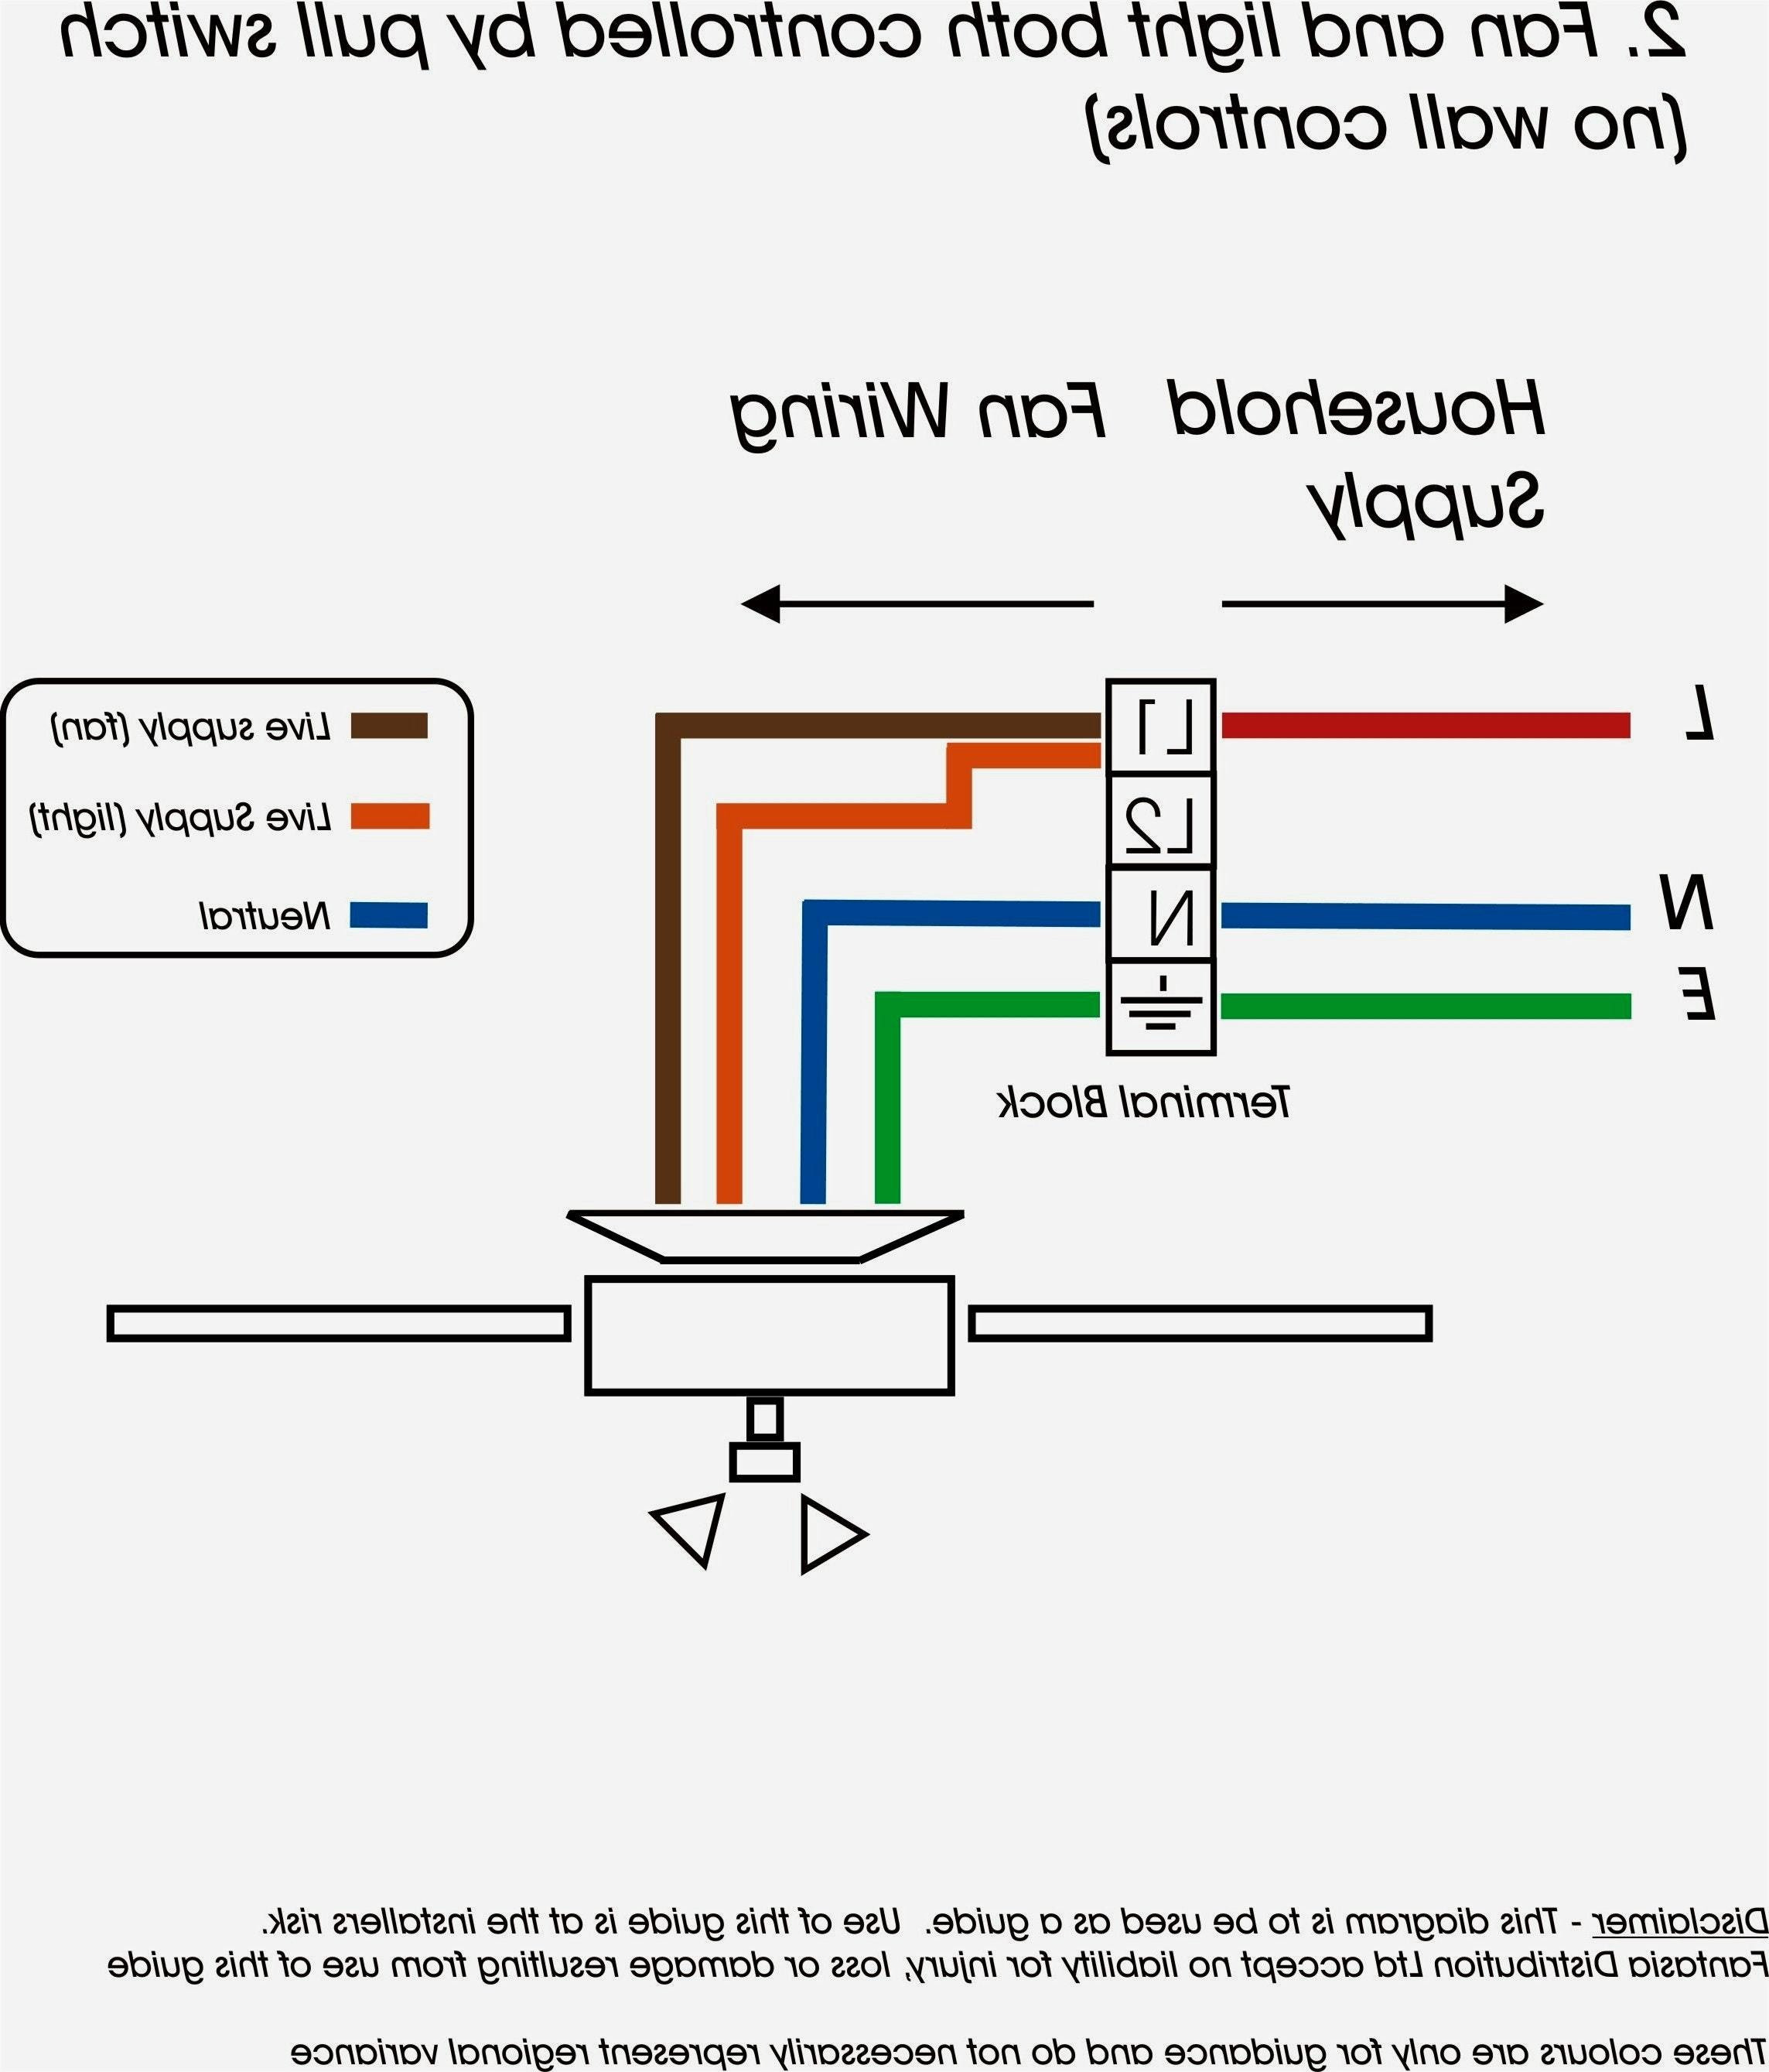 ceiling fan wiring diagram 3 speed Download-Wiring Diagram For 3 Speed Ceiling Fan New Ceiling Fan Pull Chain Light Switch Wiring Diagram Best With 3-e